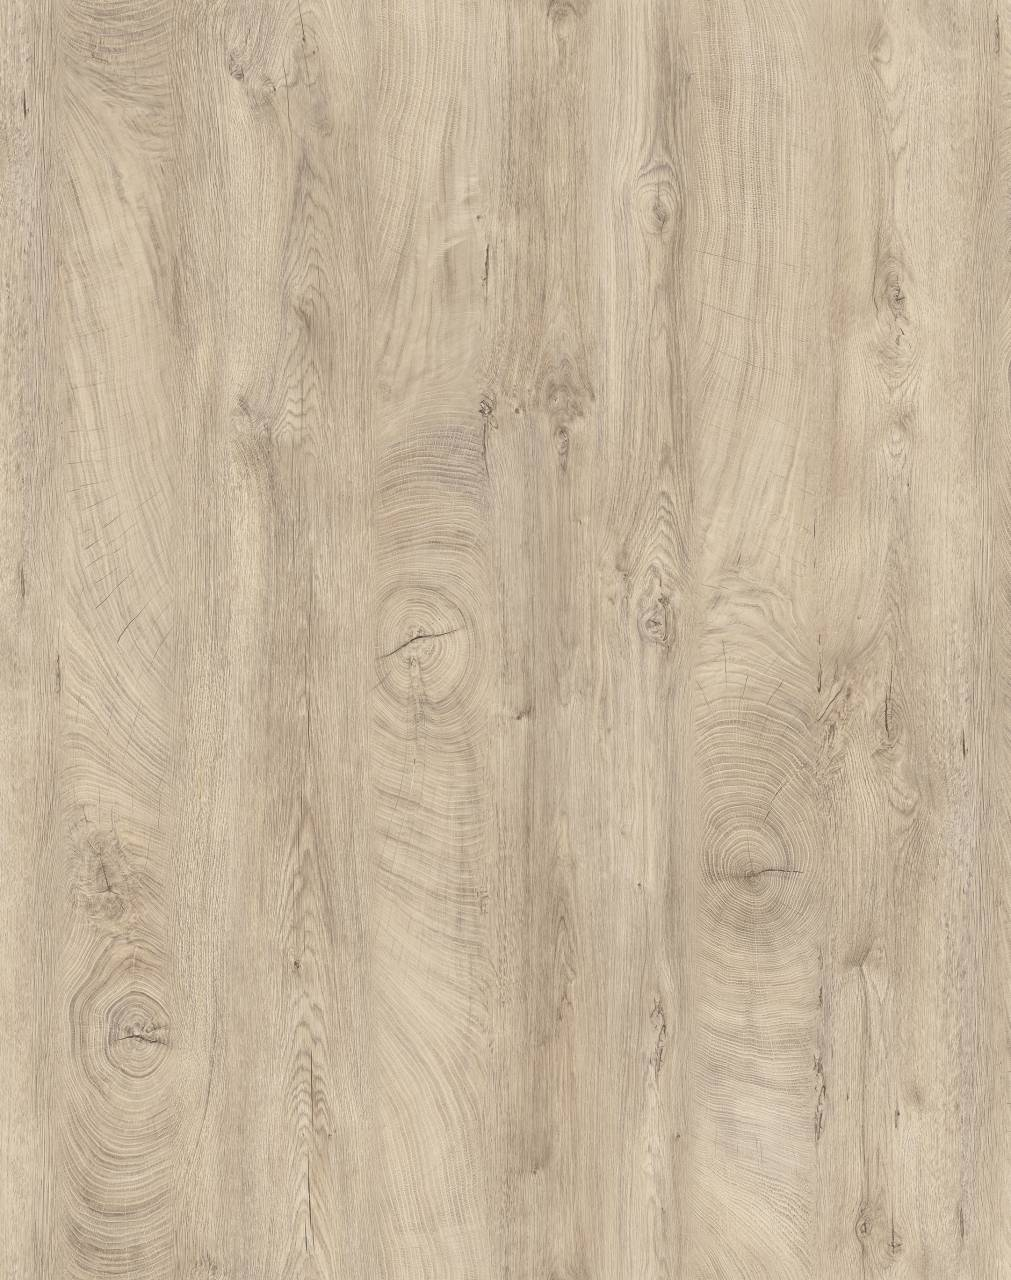 K107 Elegance Endgrain Oak (MF PB sample)